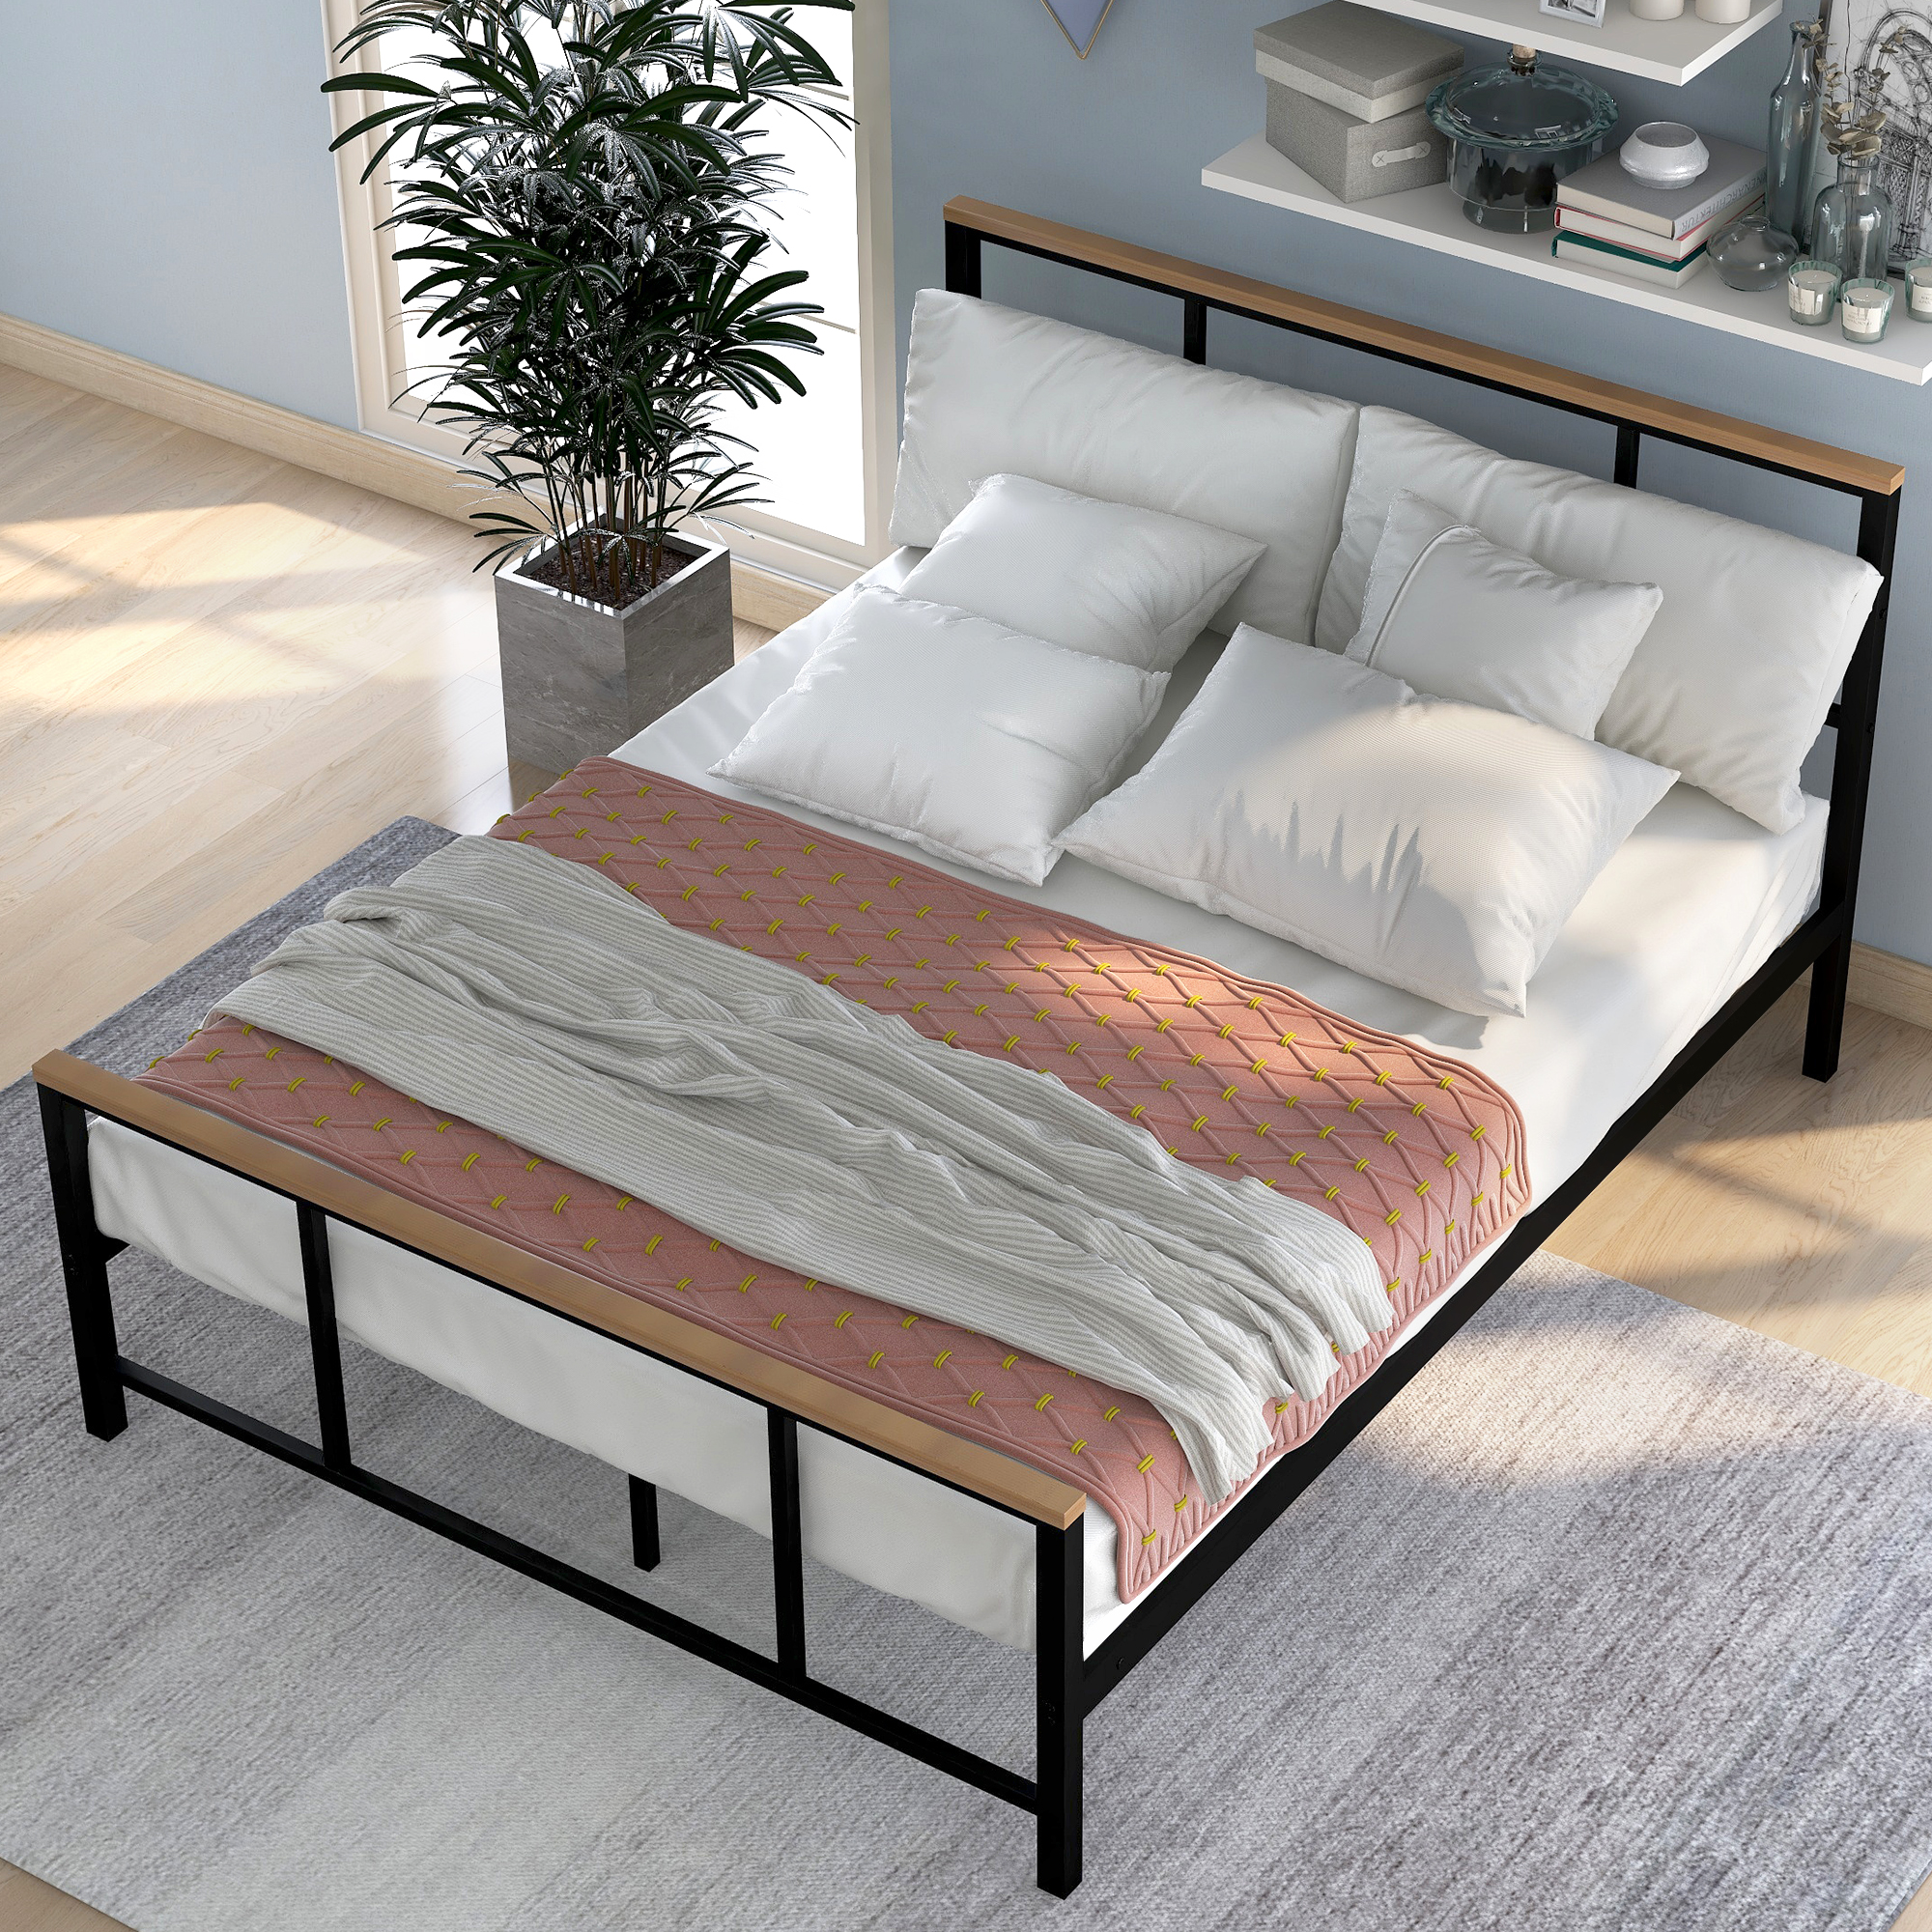 Diy Bathroom Shelf Ideas, Clearance Full Size Metal Bed Frame No Box Spring Needed Metal Bed Frame With Wood Headboard Platform Bed Frame Full Size W Footboard 11 Bed Slats Noise Free Easy Assembly 330lbs S2038